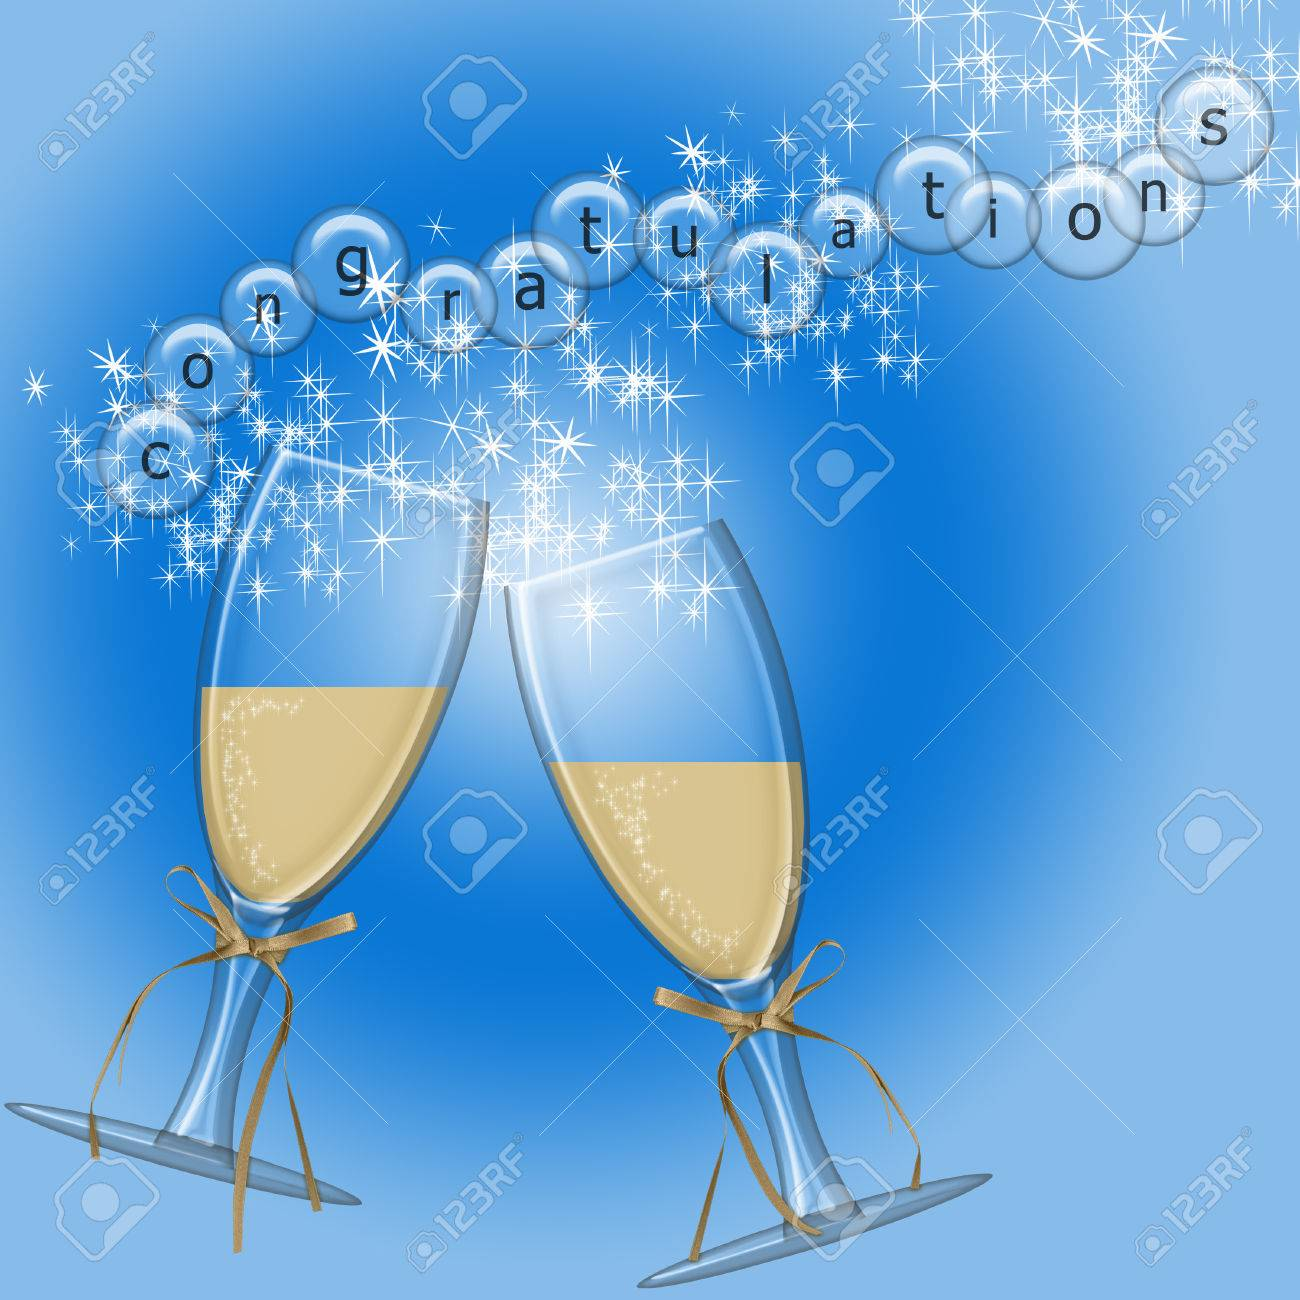 celebration glasses with congratulations in the bubbles Stock Vector - 7119851